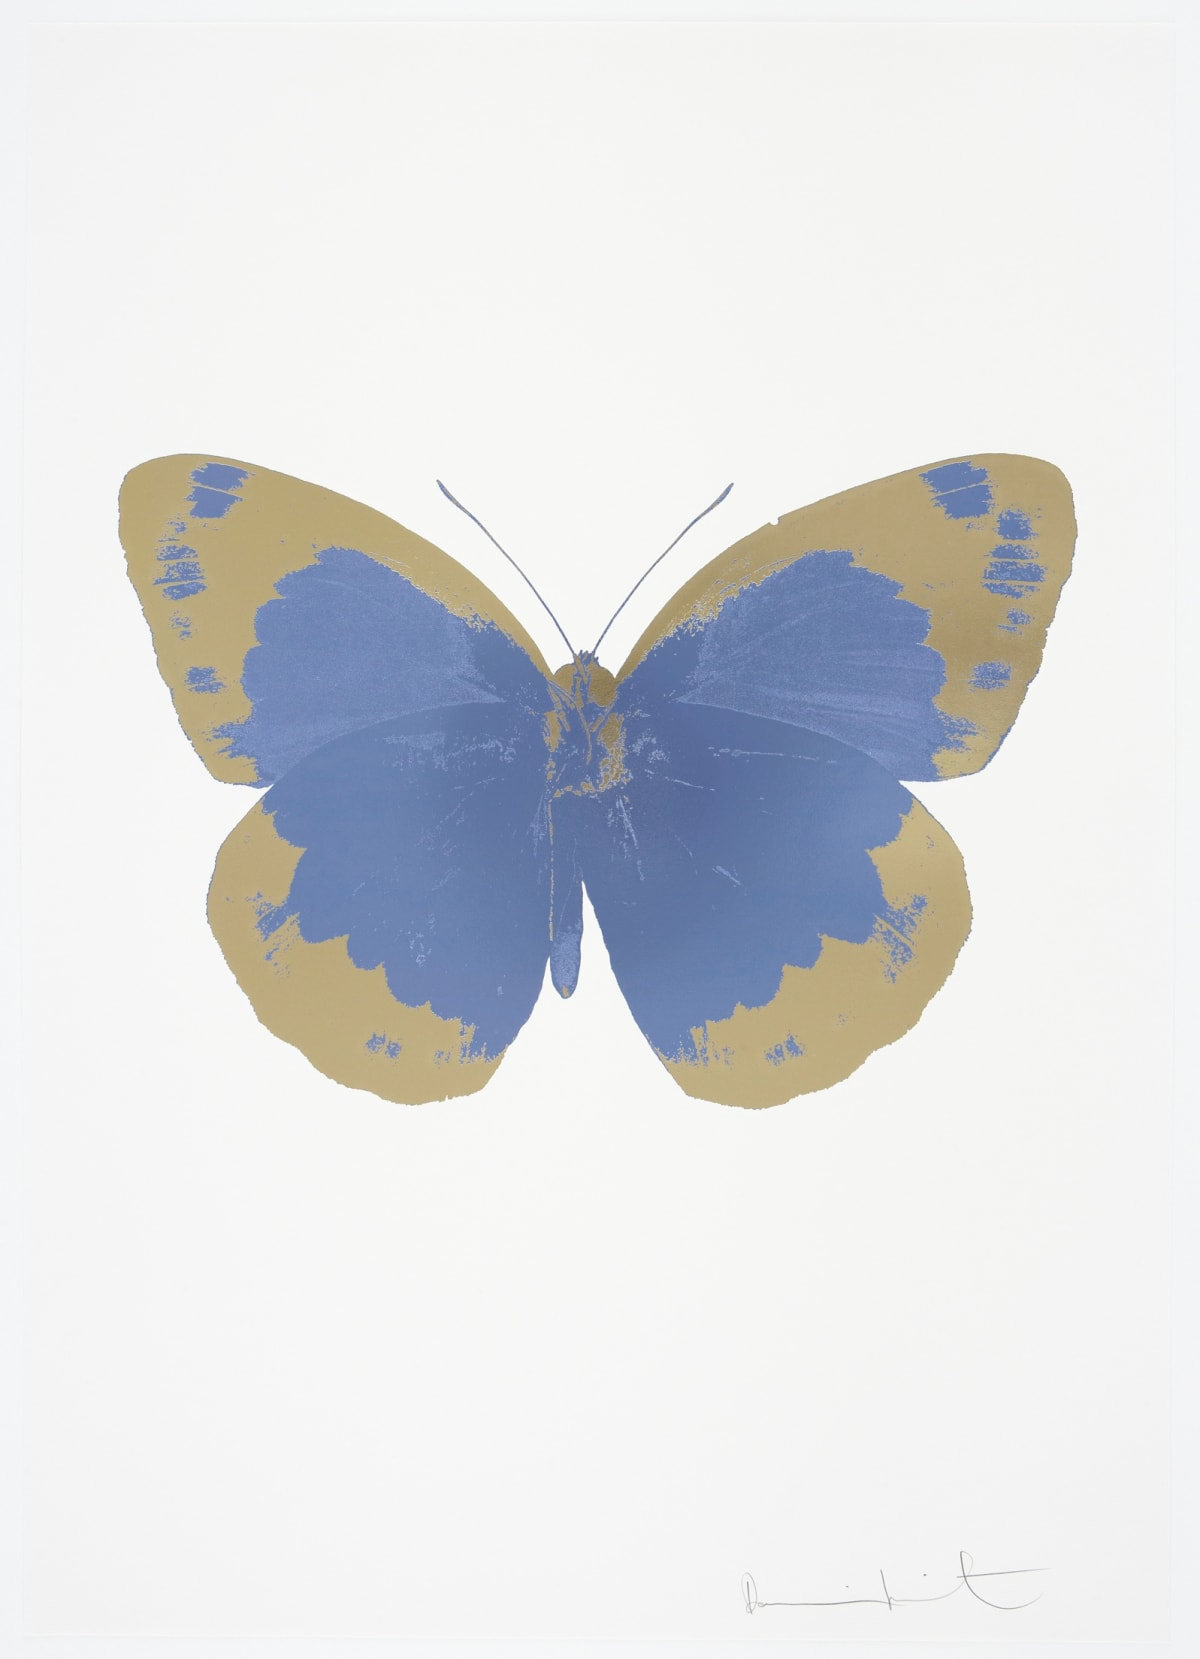 Damien Hirst The Souls II - Cornflower Blue/Cool Gold/Blind Impression, 2010 2 colour foil block on 300gsm Arches 88 archival paper. Signed and numbered. Published by Paul Stolper and Other Criteria 72 x 51cm OC7827 / 658-10 Edition of 15